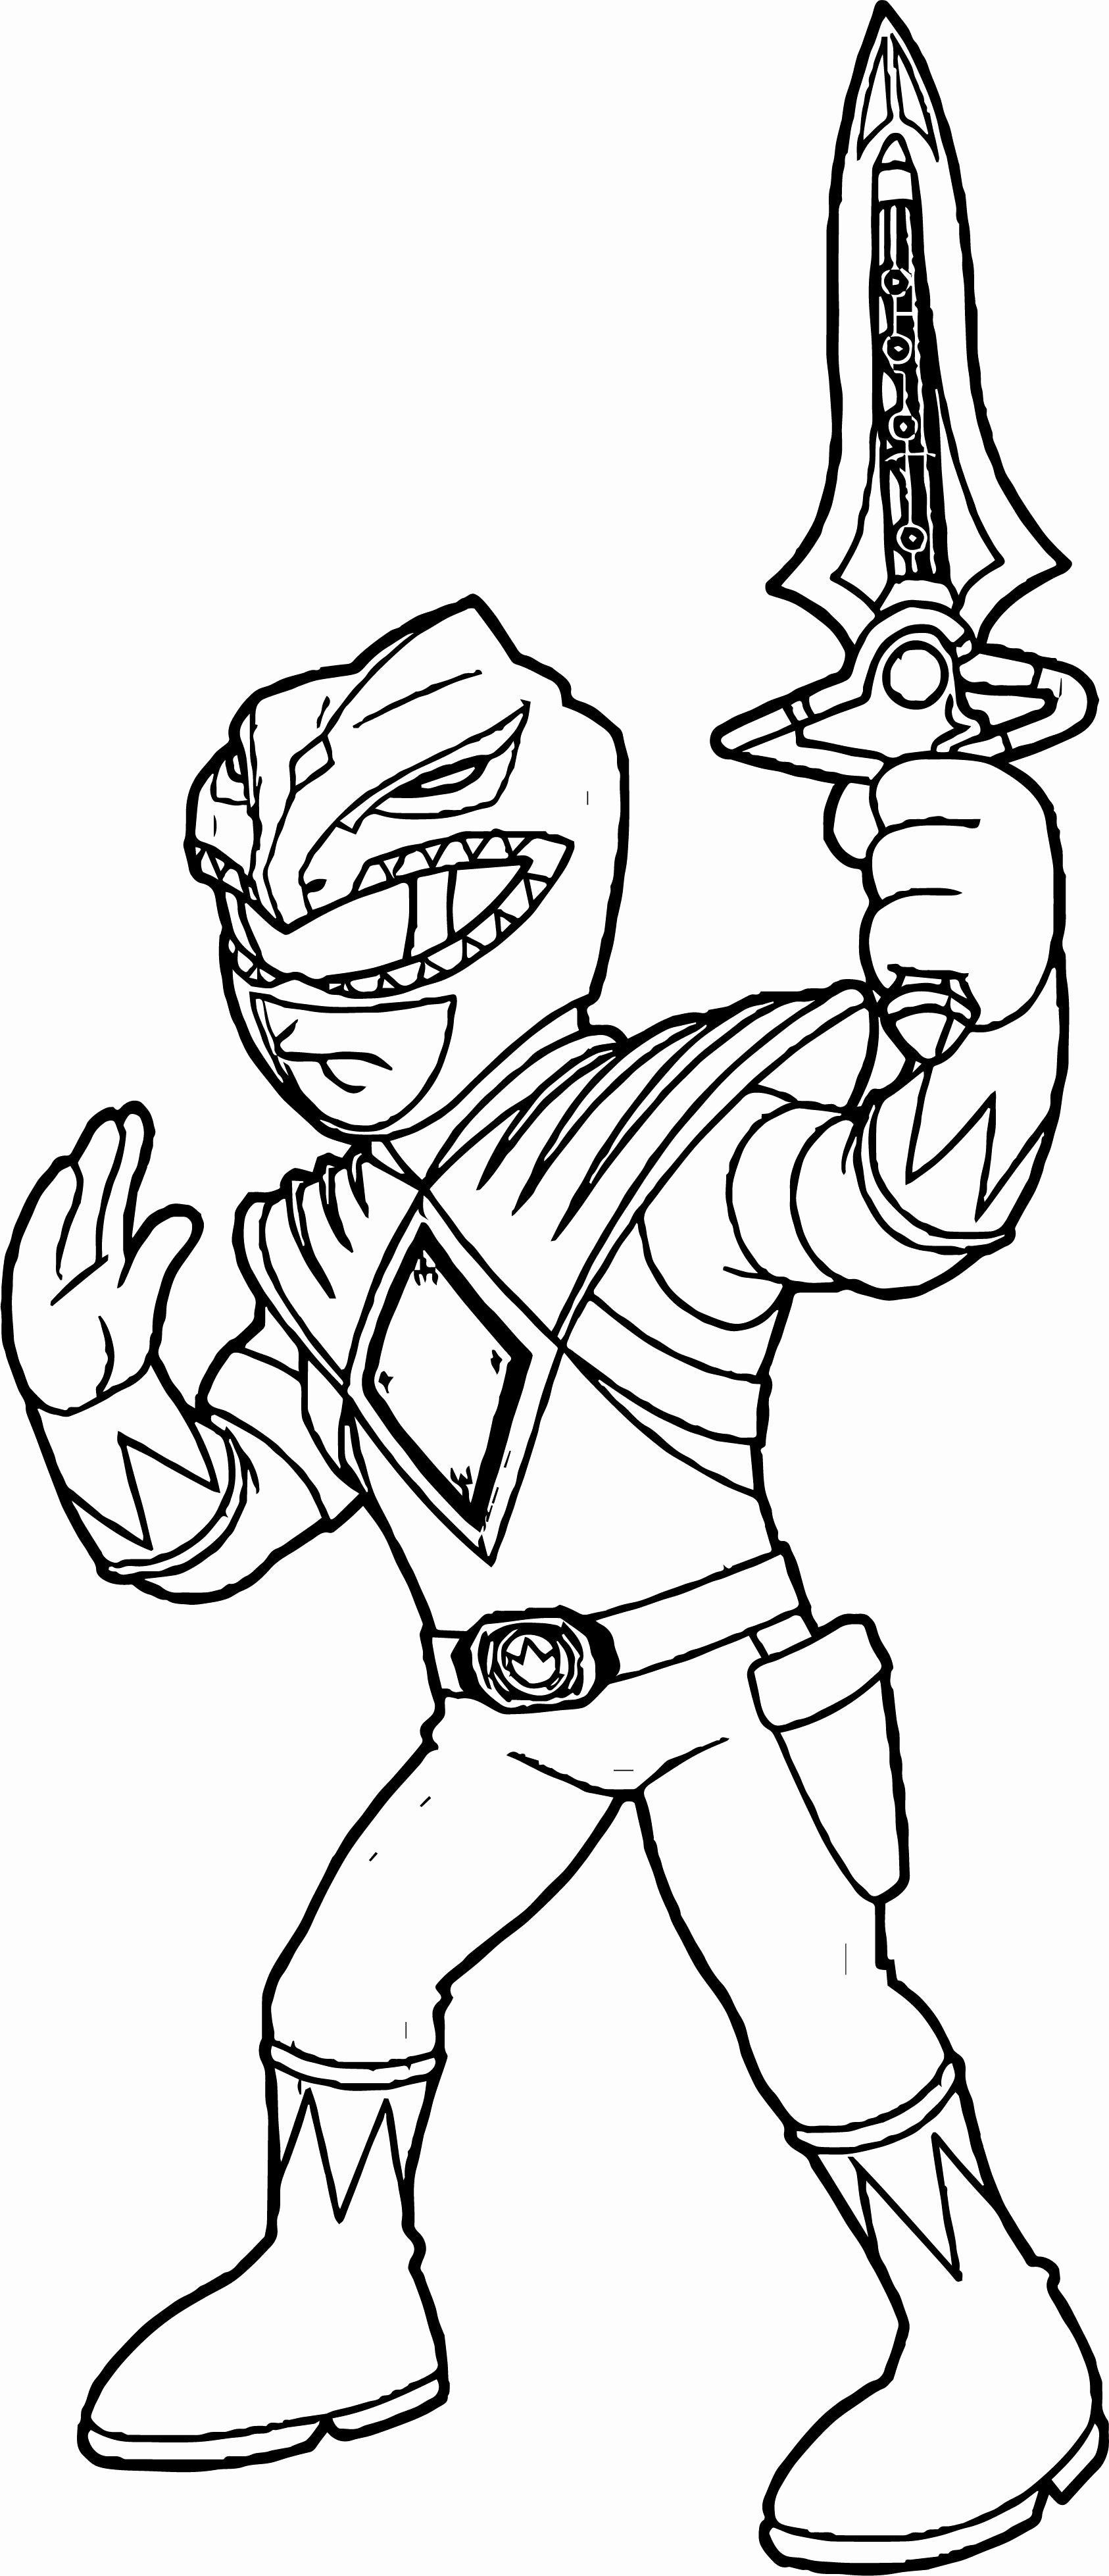 Power Ranger Coloring Page Awesome Power Rangers Green Ranger Coloring Page In 2020 Power Rangers Coloring Pages Dinosaur Coloring Pages Coloring Pages